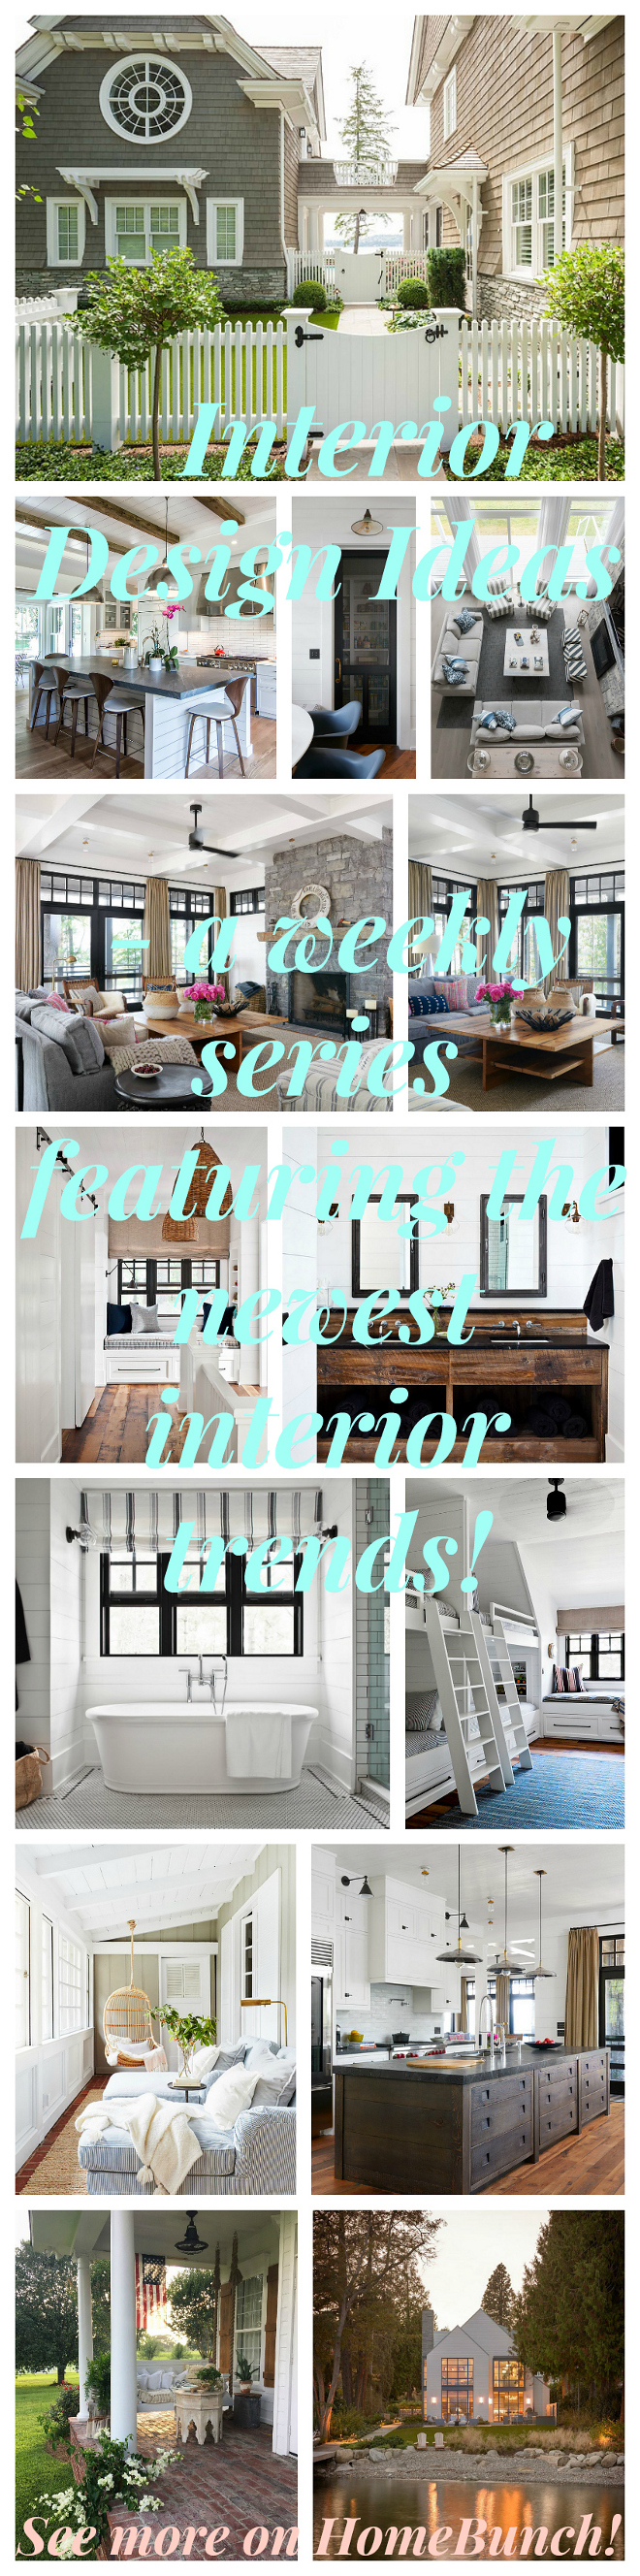 Interior Design Ideas - a weekly series featuring the newest interior trends! See more on HomeBunch!